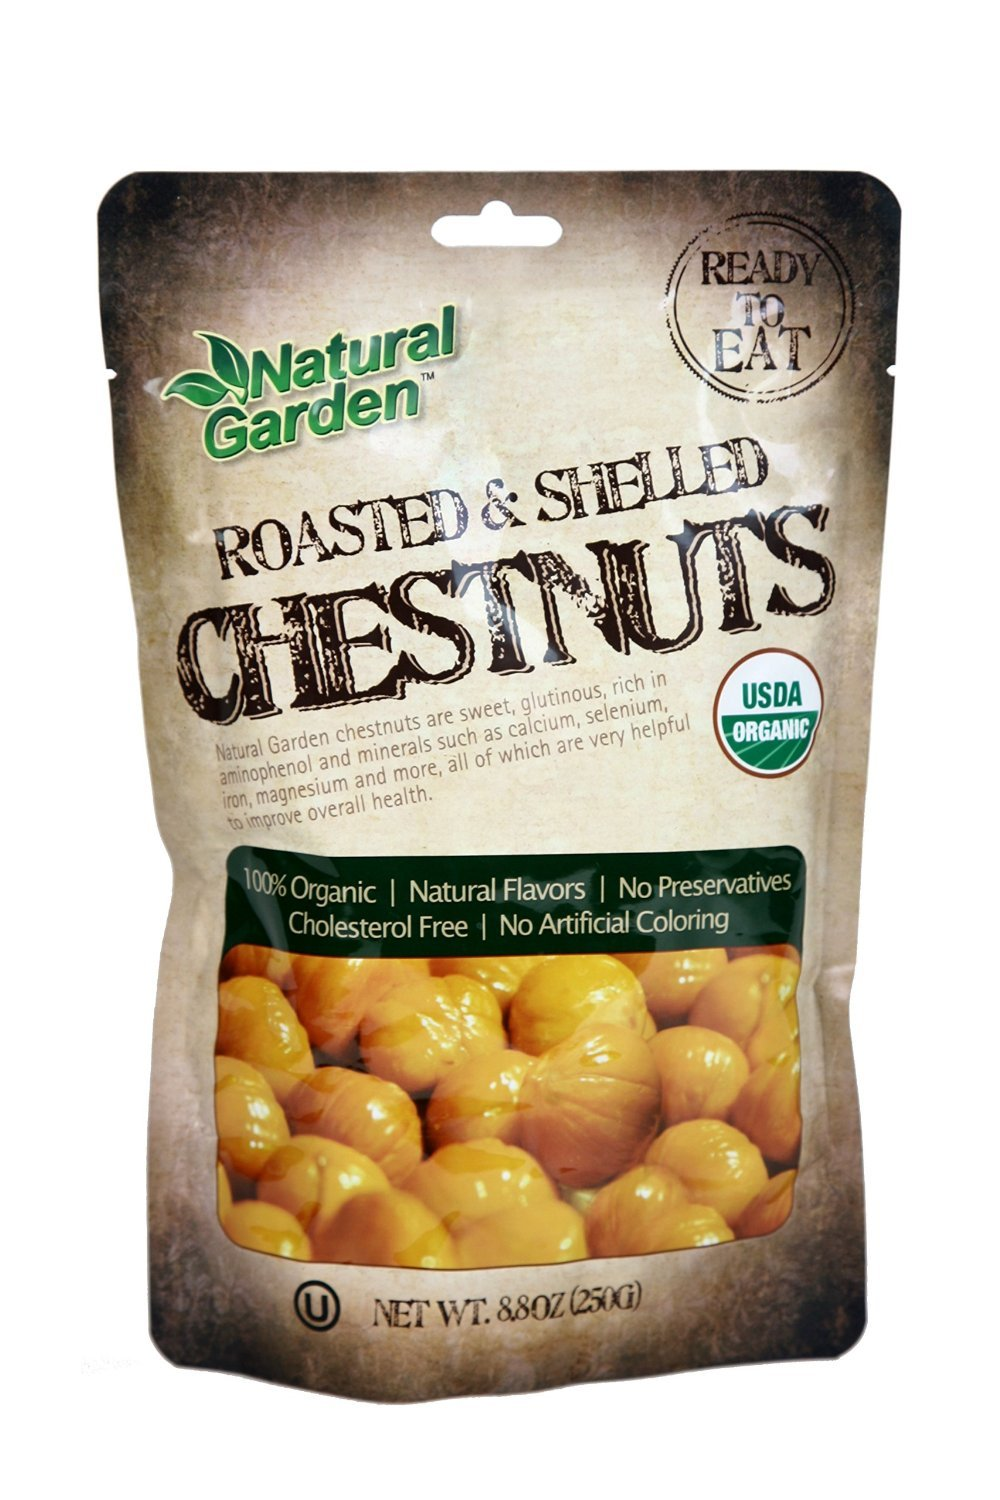 ** 8 Pack ** Natural Garden 100% Roasted & Peeled Organic Chestnuts - (8.8oz / 250g)